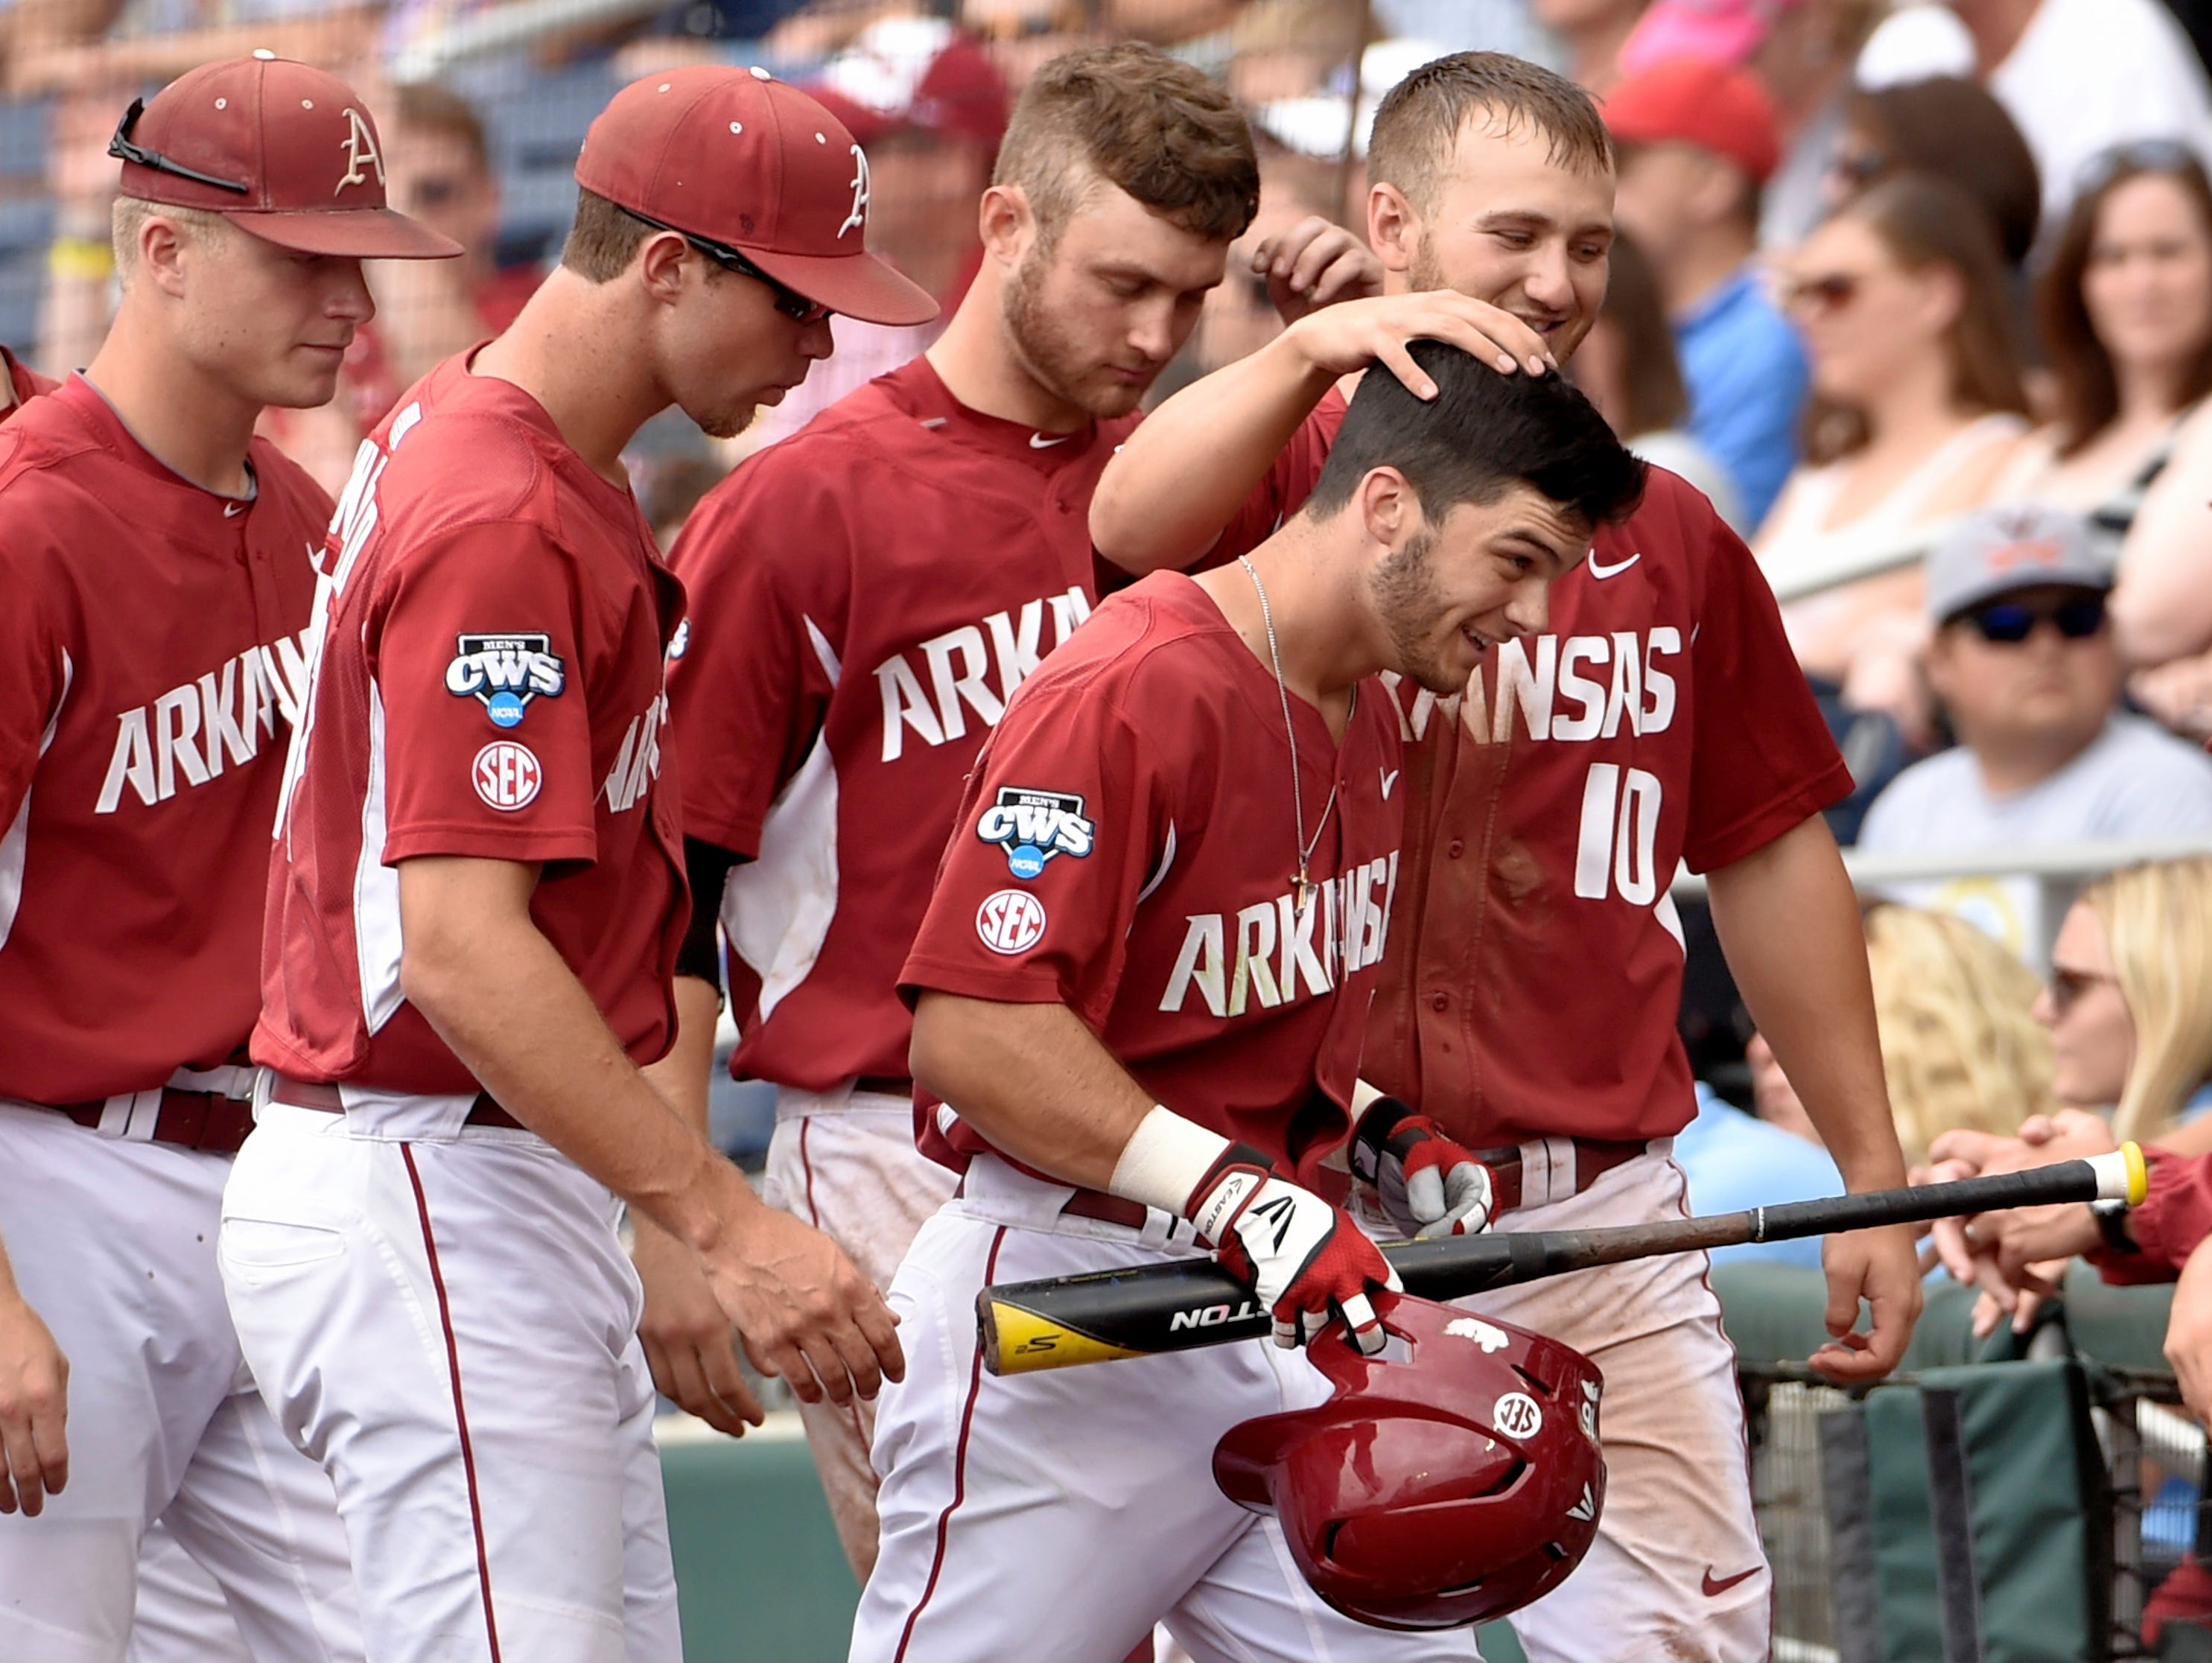 Arkansas' Andrew Benintendi, bottom right, is greeted at the dugout by Joe Serrano (10) after he hit a solo home run against Virginia in the fifth inning.